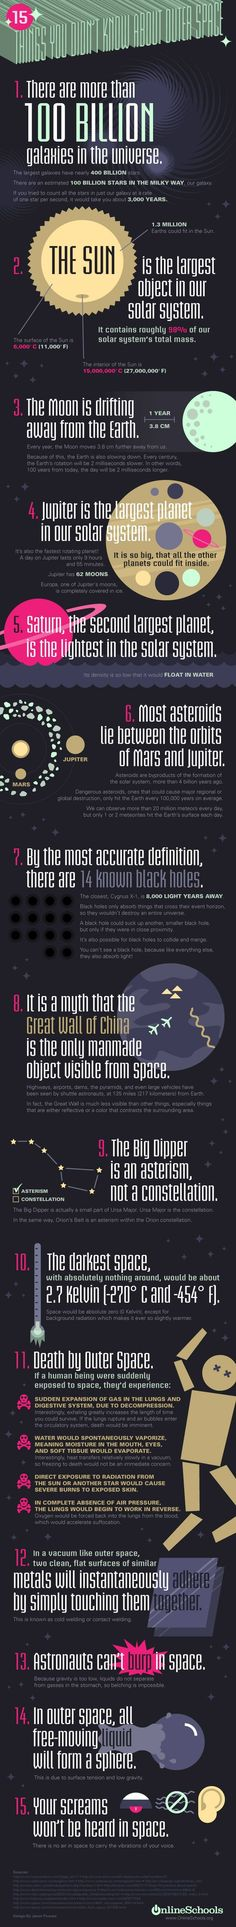 Get to know interesting facts about #space, the vast #galaxy and solar system which house the #earth.